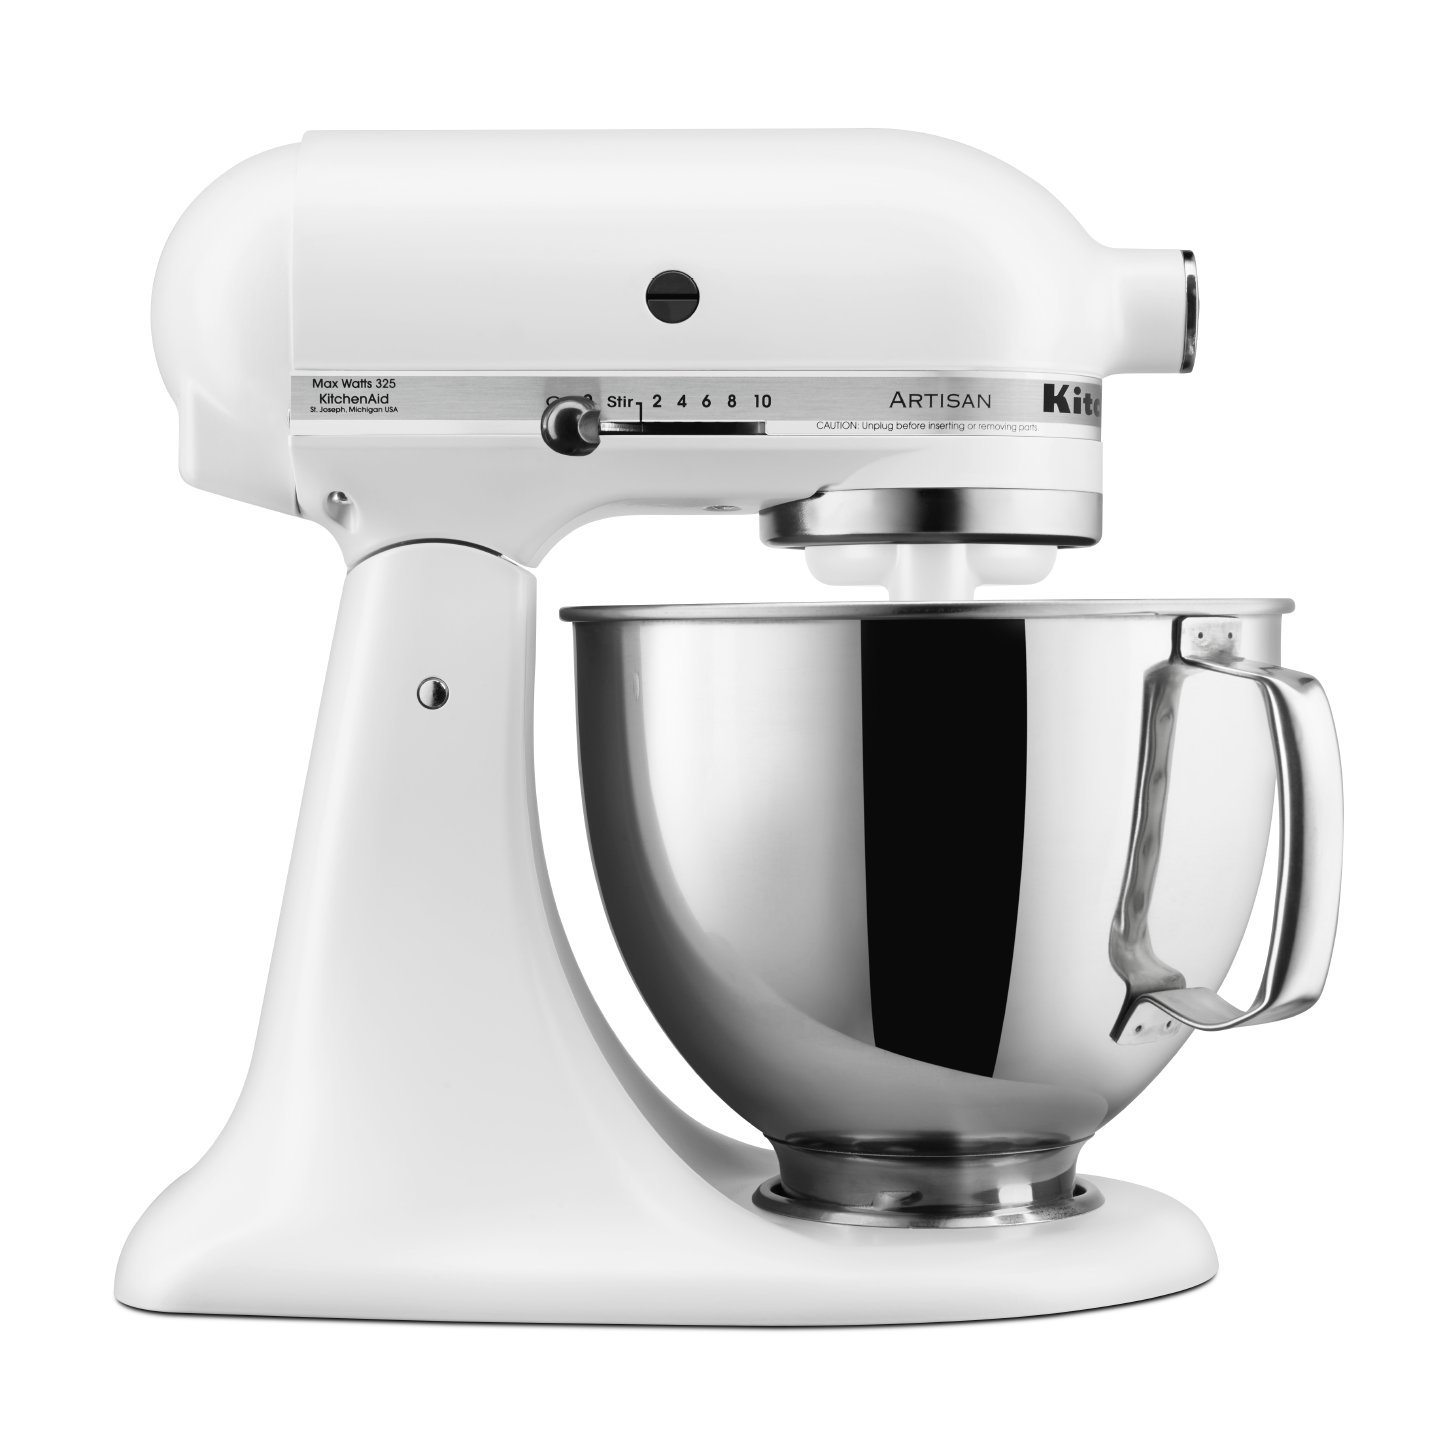 Amazon.de: KitchenAid Artisan 5KSM150PSEFW Weiß Matt